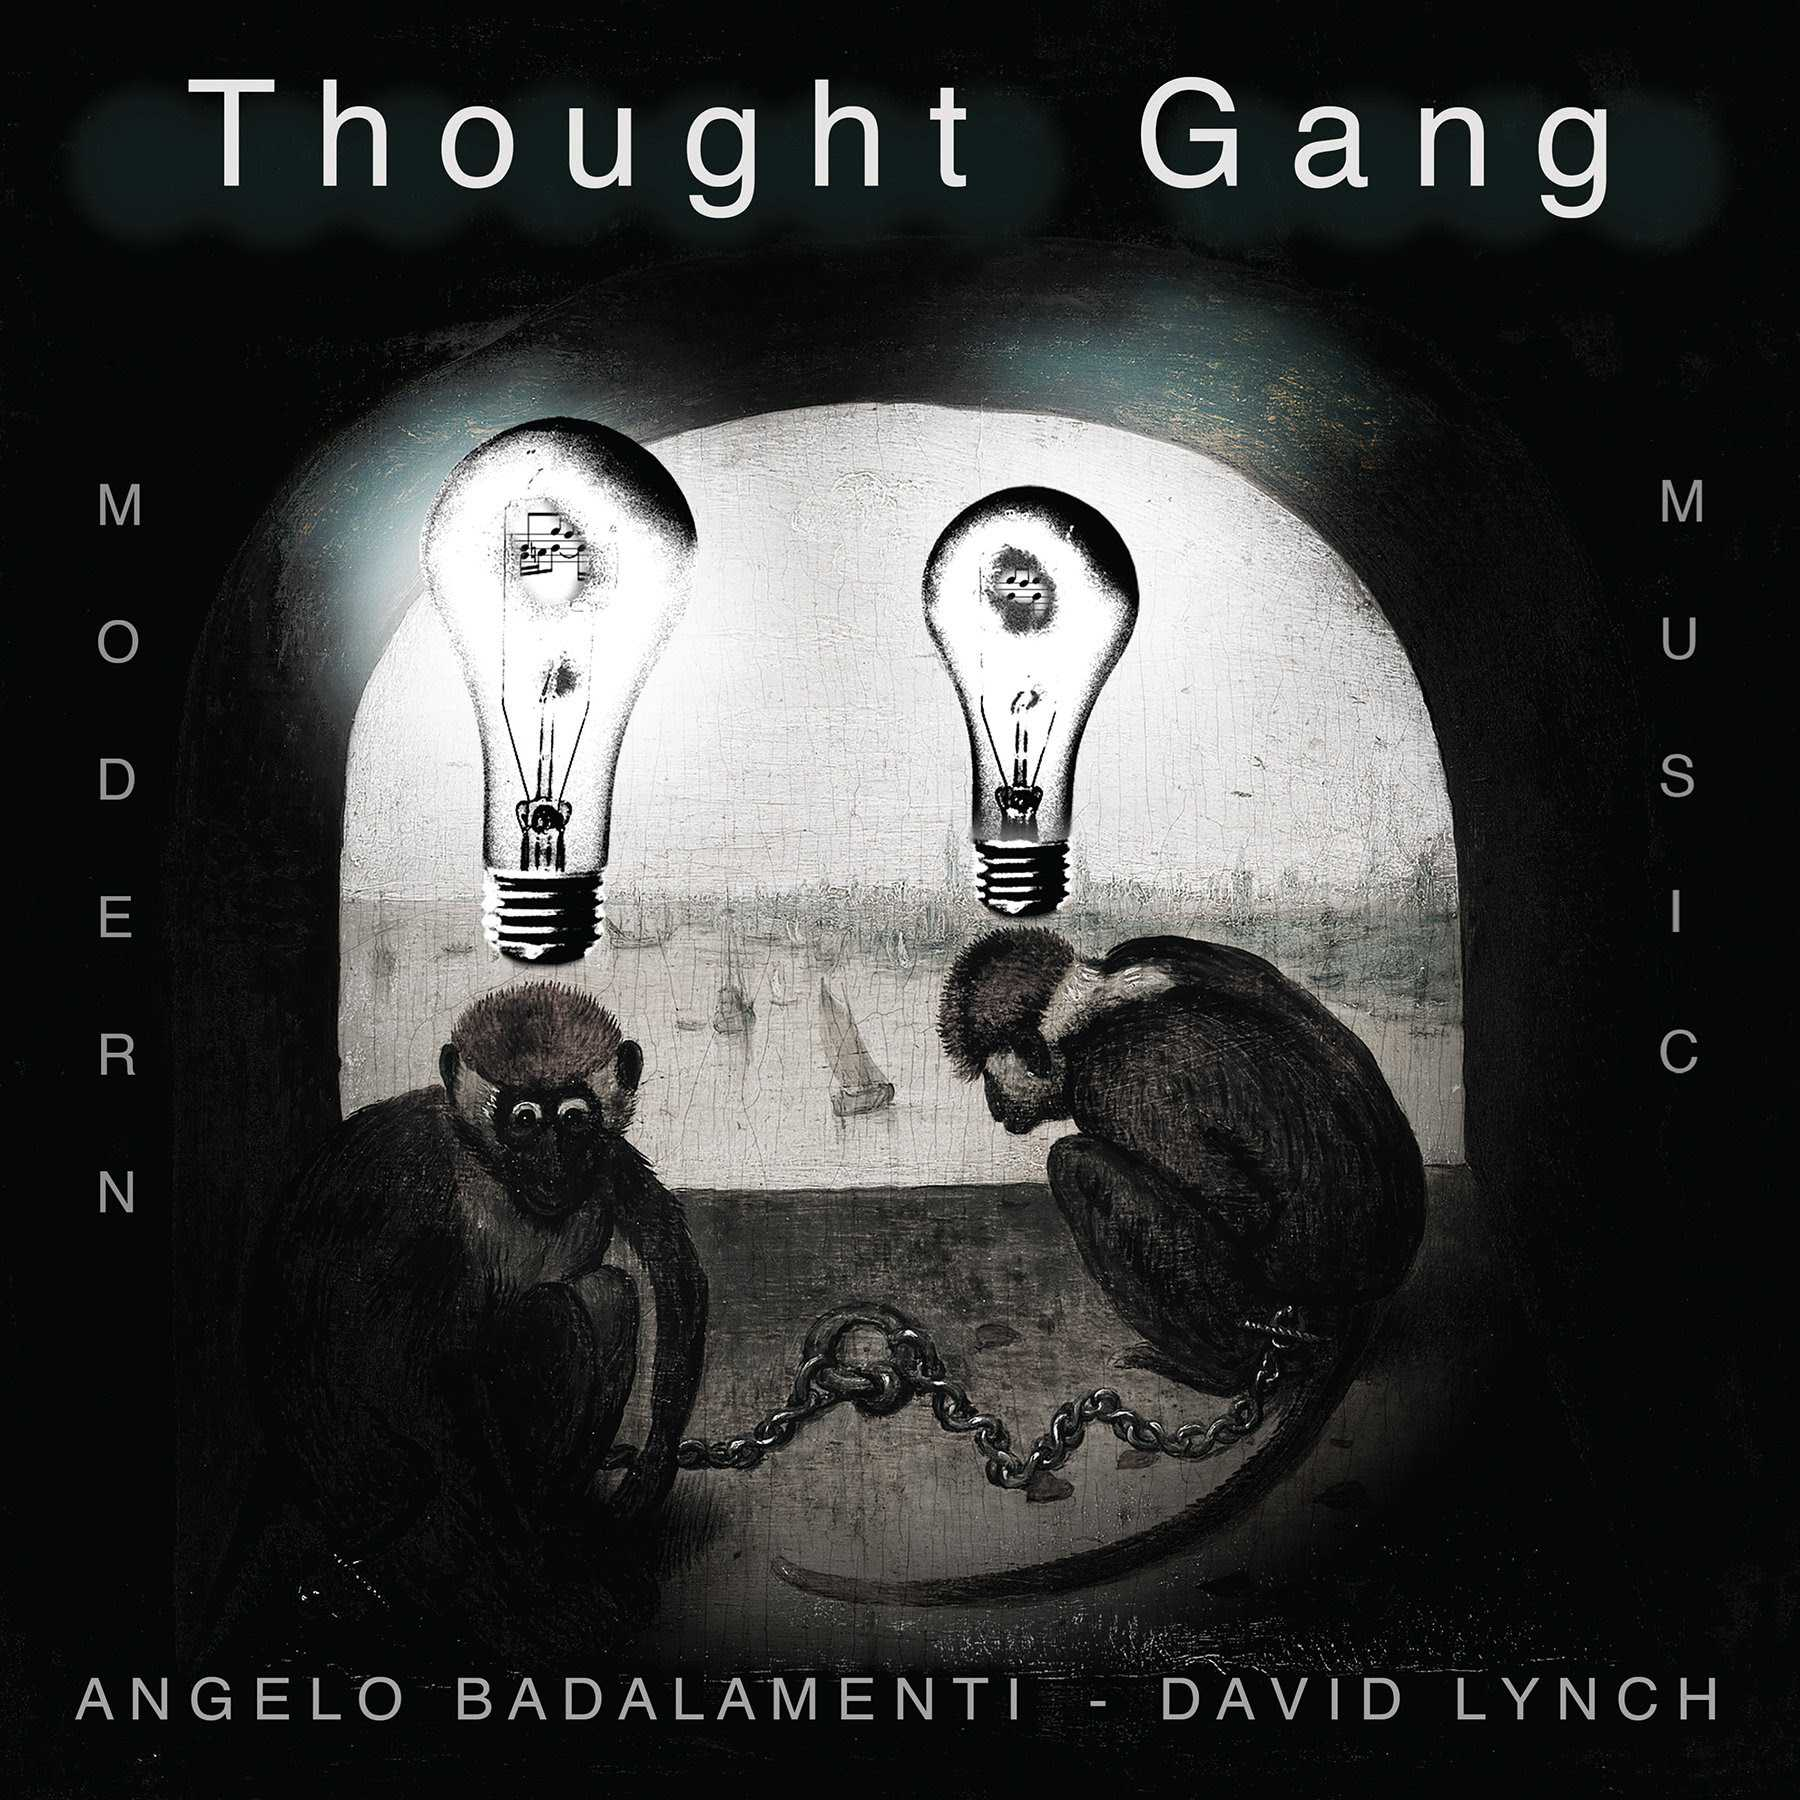 David Lynch, Angelo Badalamenti - Thought Gang - обложка